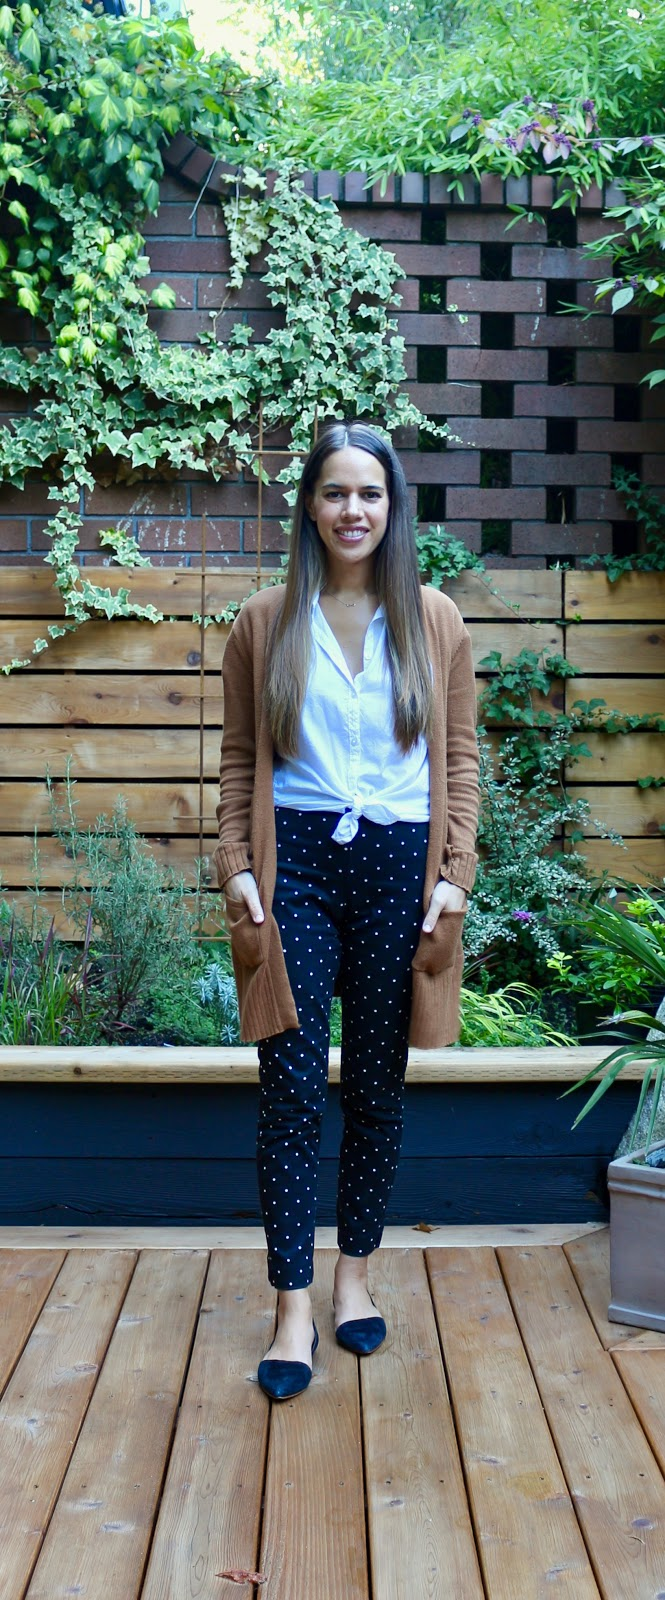 Jules in Flats - Old Navy High Waisted Pixie Polka Dot Pants (Business Casual Workwear on a Budget)